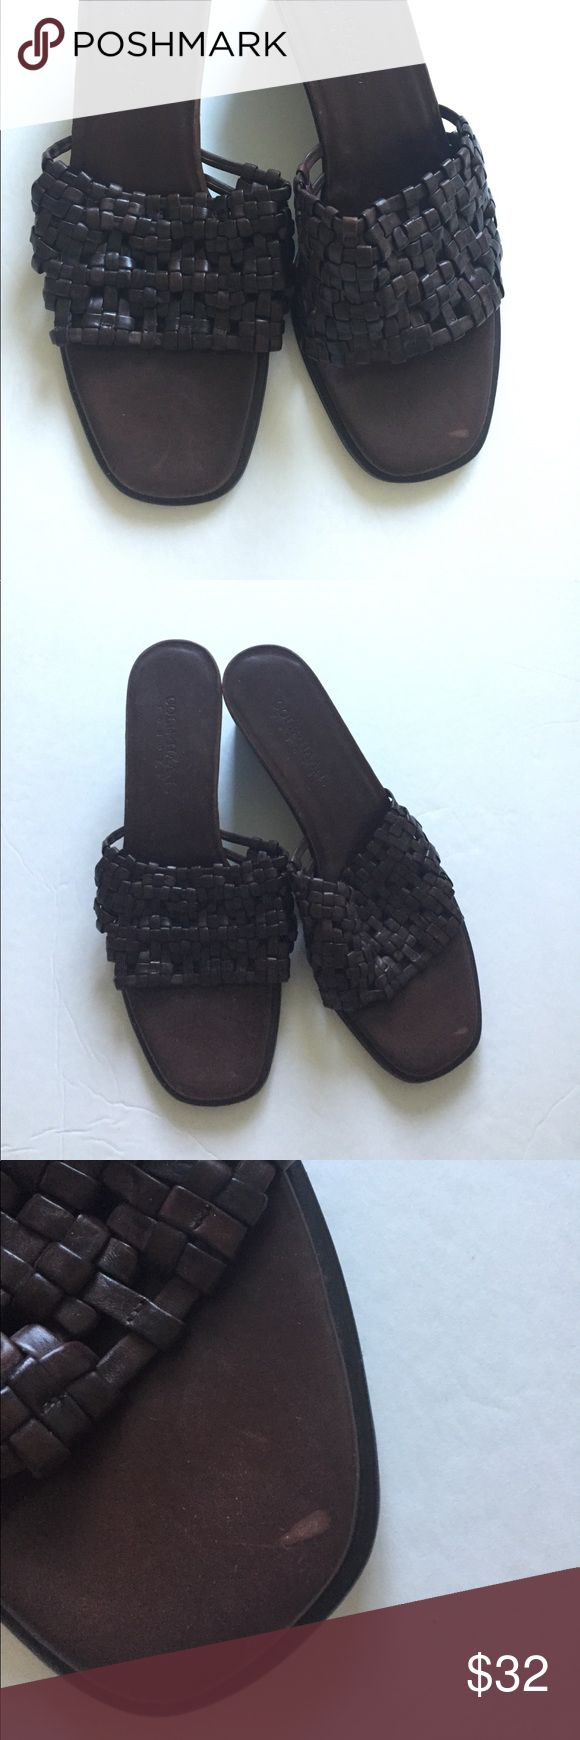 Cole Haan dark brown basket weave espadrilles.Sz 9 Up for sale are gorgeous dark brown espadrille sandals from Cole Haan. Great condition! Size 9. Basket weave style. Made in Brazil. 🌻All my items come from a 100% smoke free/pet free environment. 🌻Offers welcome. 🌻Check out my other items! 🌻Happy to bundle for discoun Cole Haan Shoes Sandals